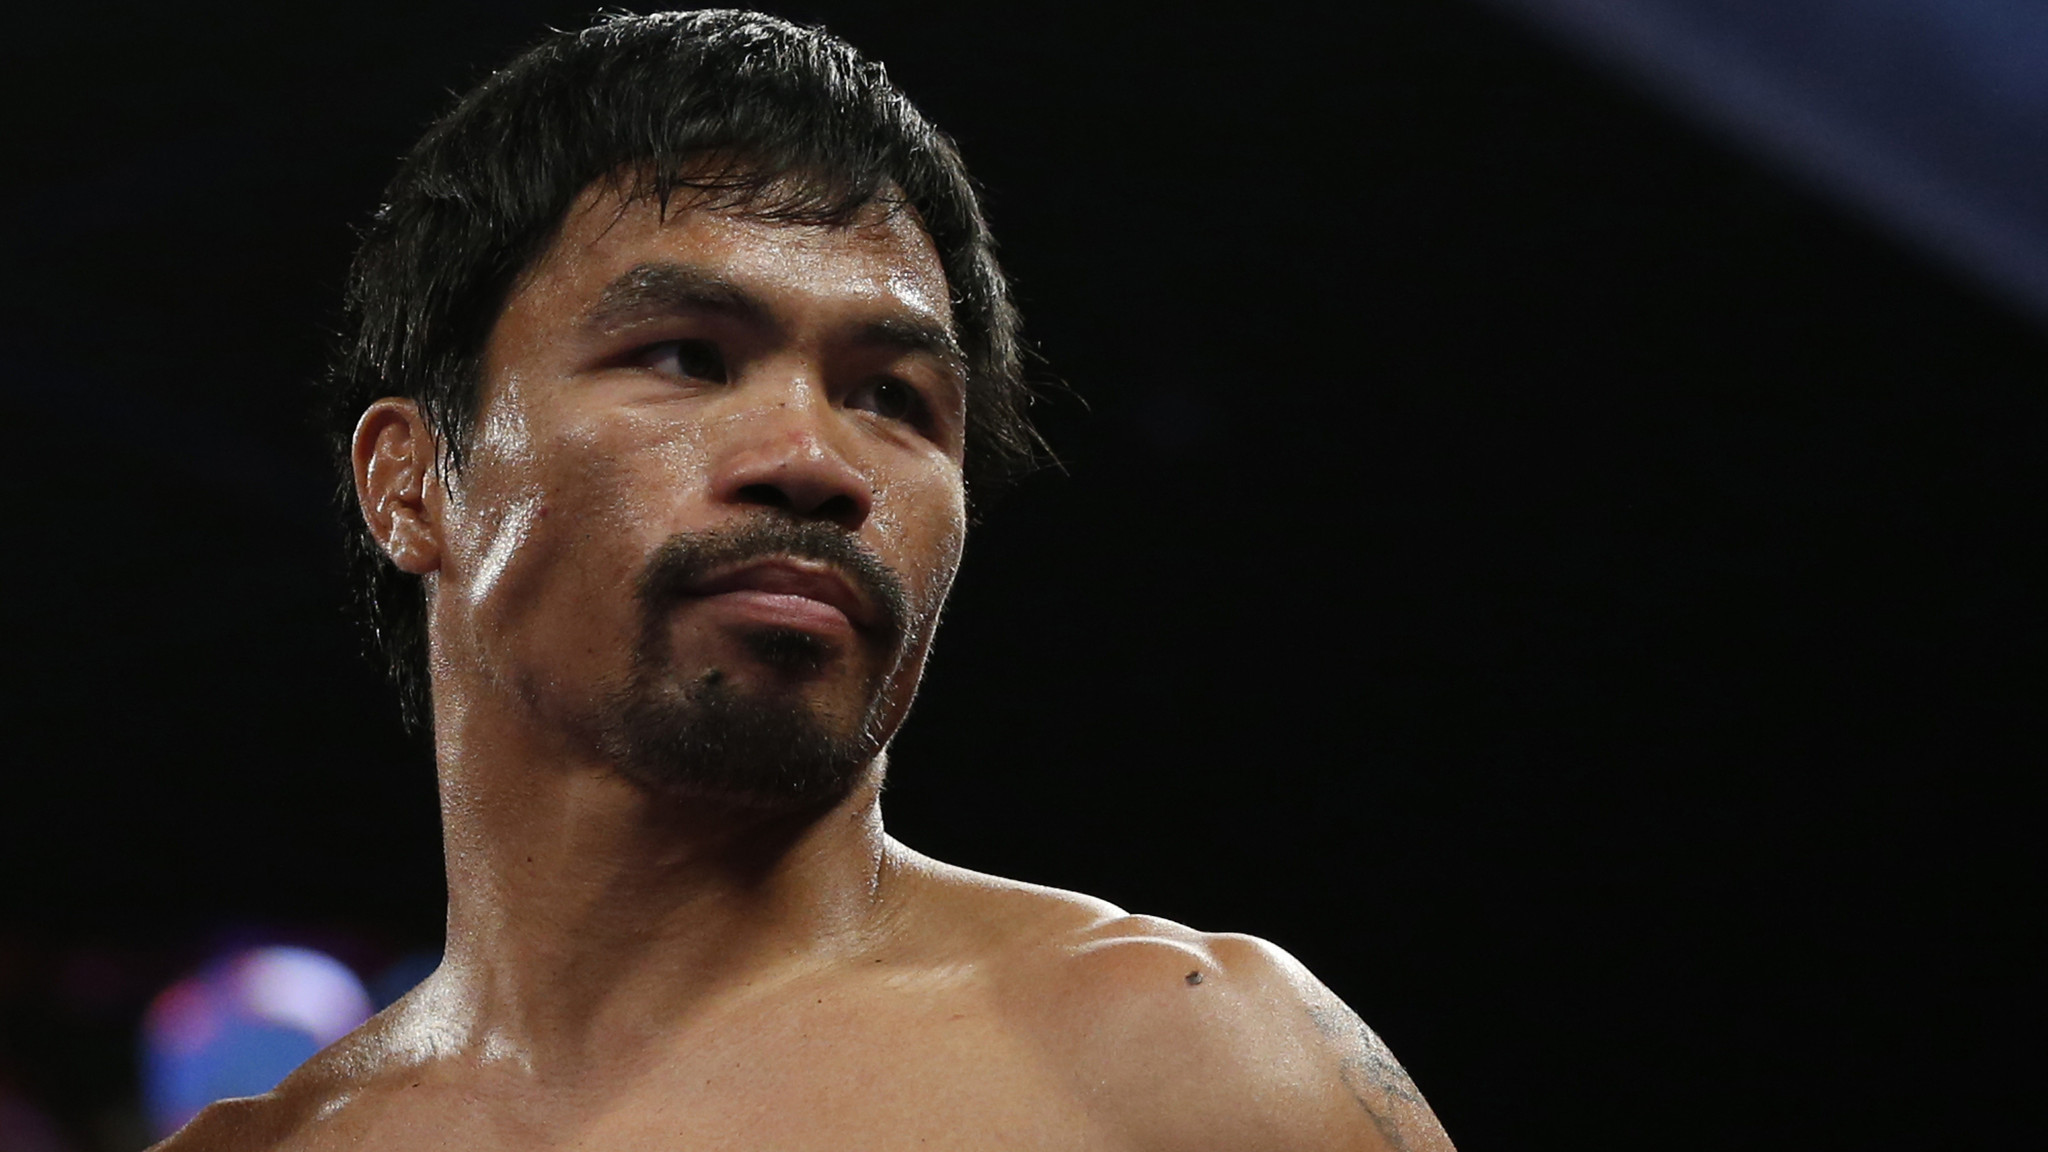 la sp sn manny pacquiao floyd mayweather boxing deadline